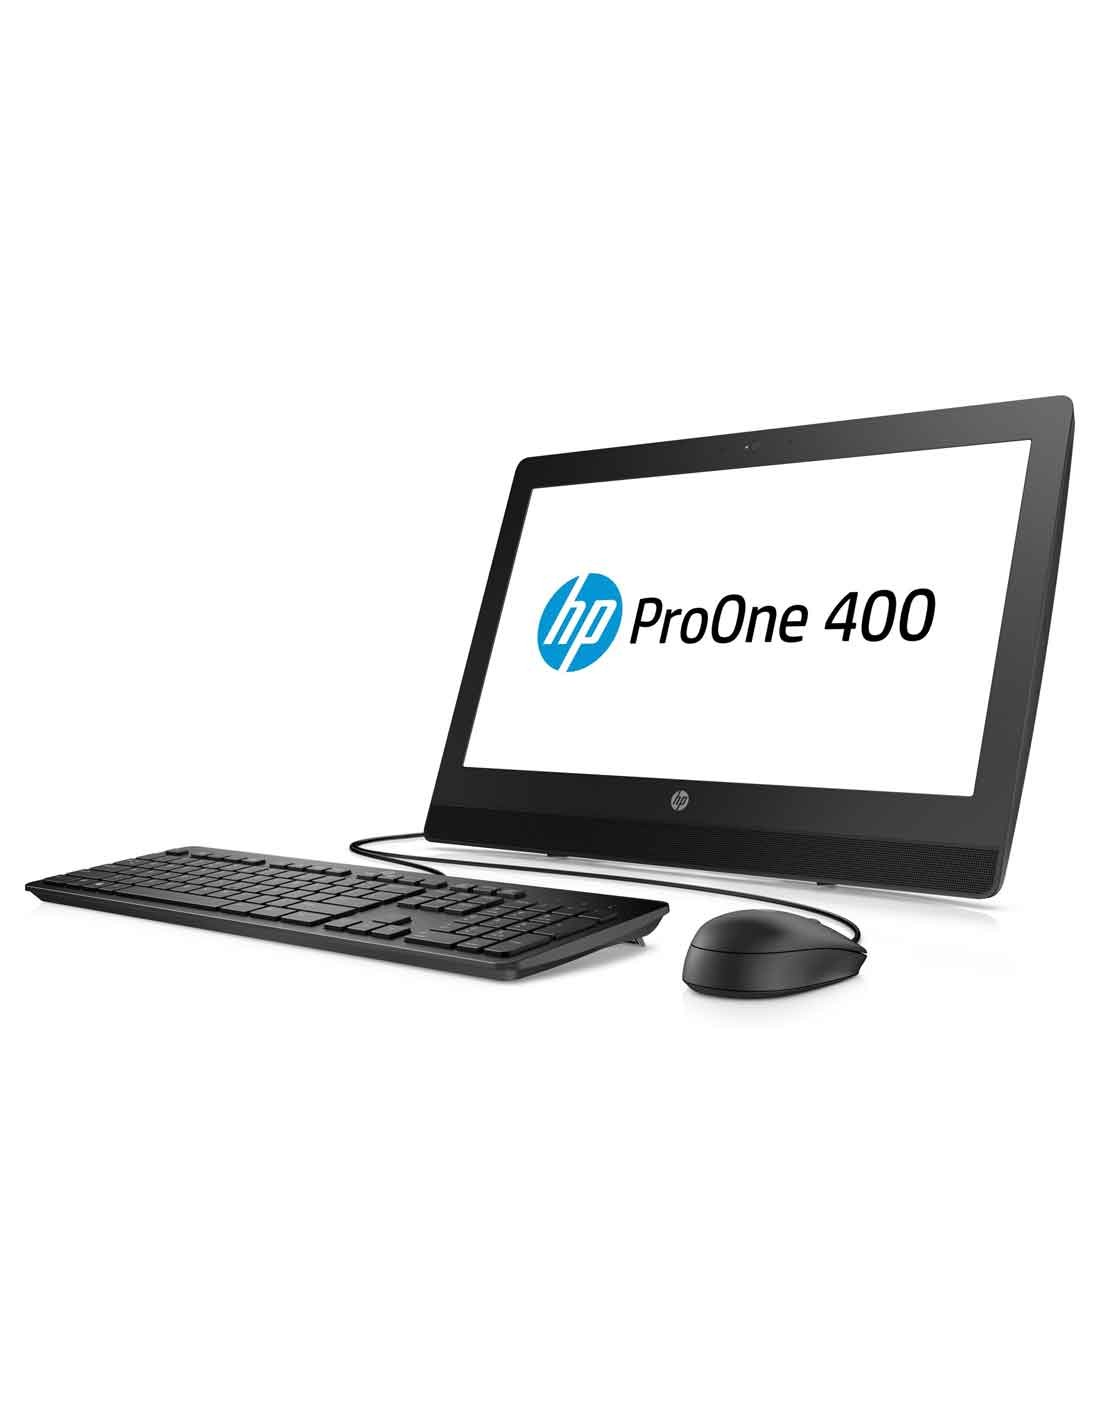 HP ProOne 400 G3 All-in-One Dubai Online Store